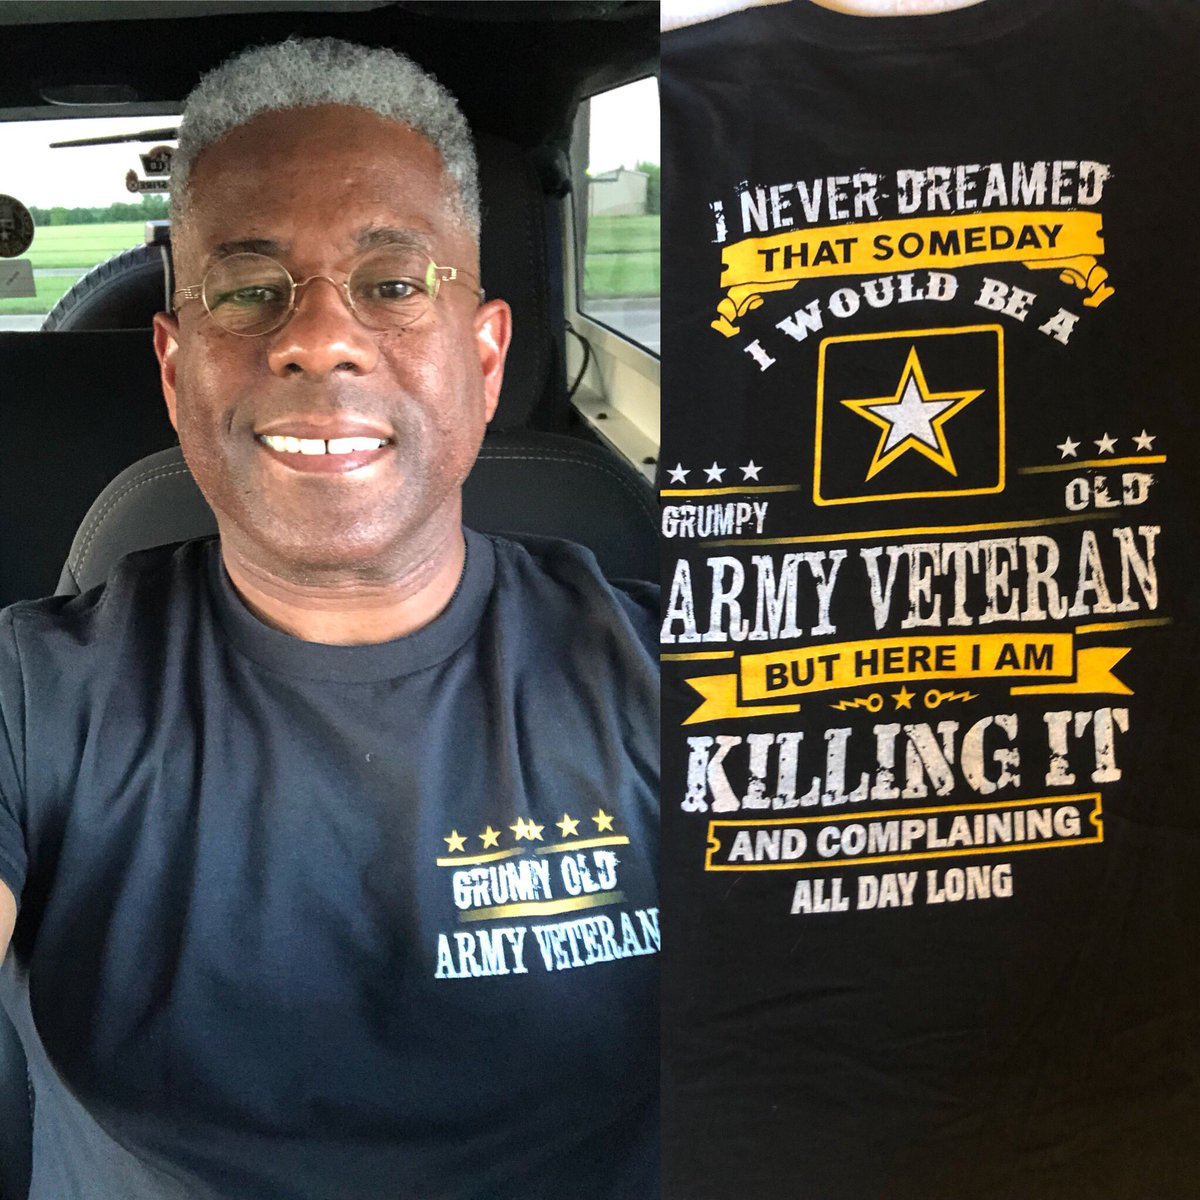 Greetings from Lawton/Ft Sill Oklahoma, check out my new t-shirt #tcot #TuesdayThoughts #veterans #tshirts https://t.co/tO802mwICI